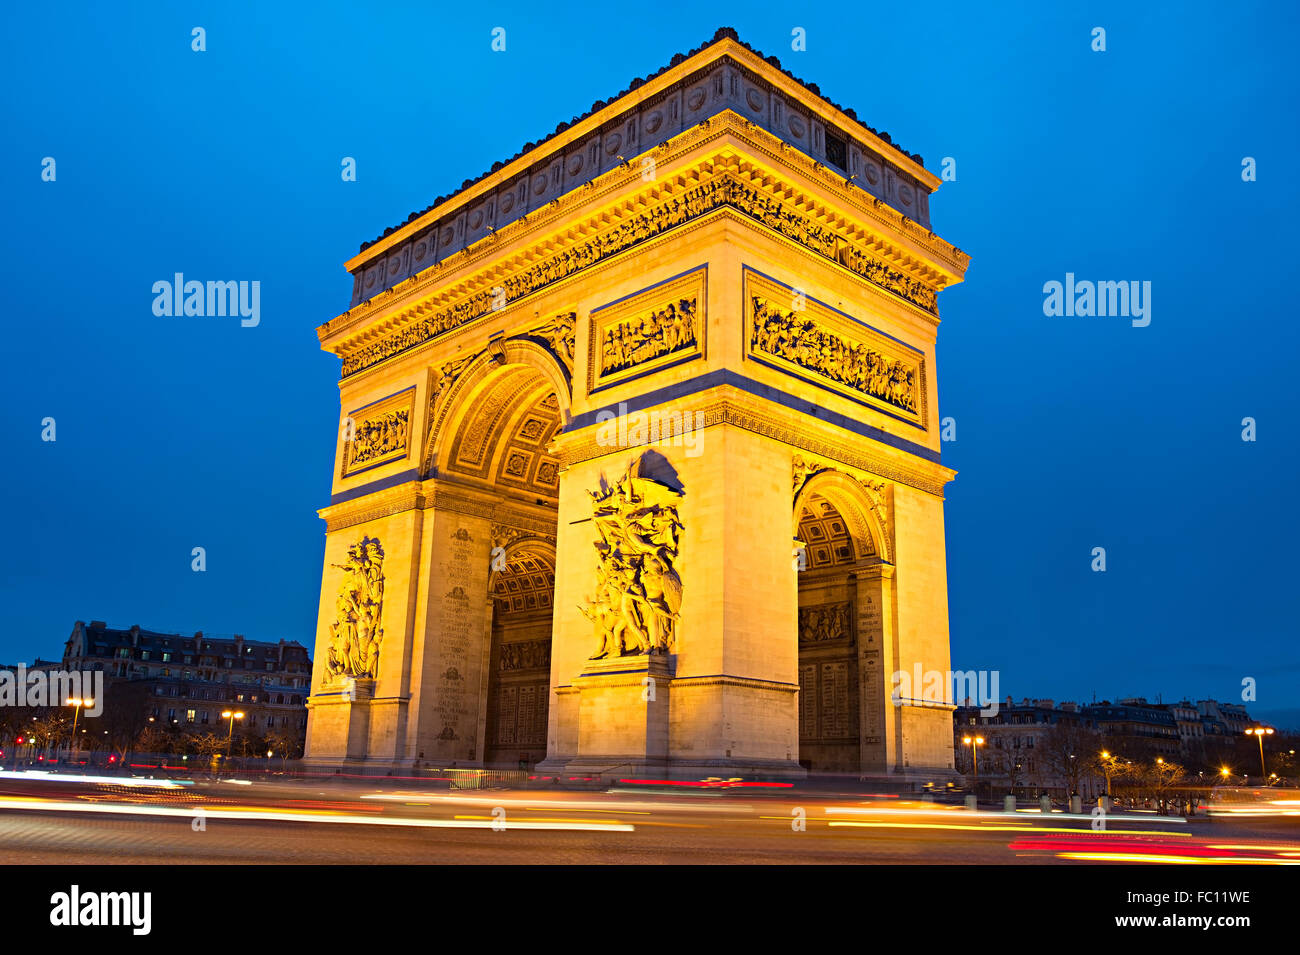 Triumphbogen, Paris Stockbild